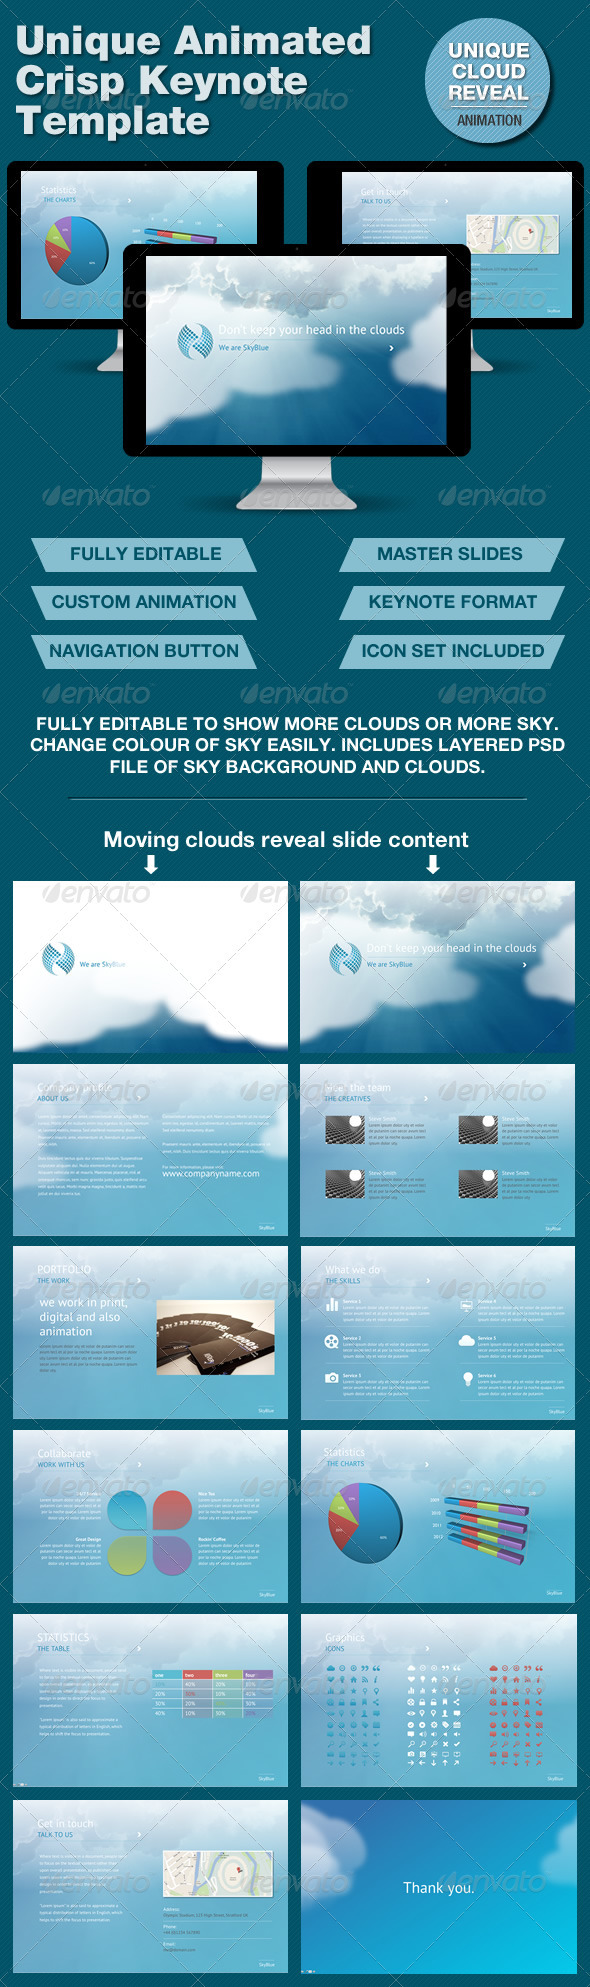 SkyBlue Keynote Template with Unique Animation | Keynote, Animation ...